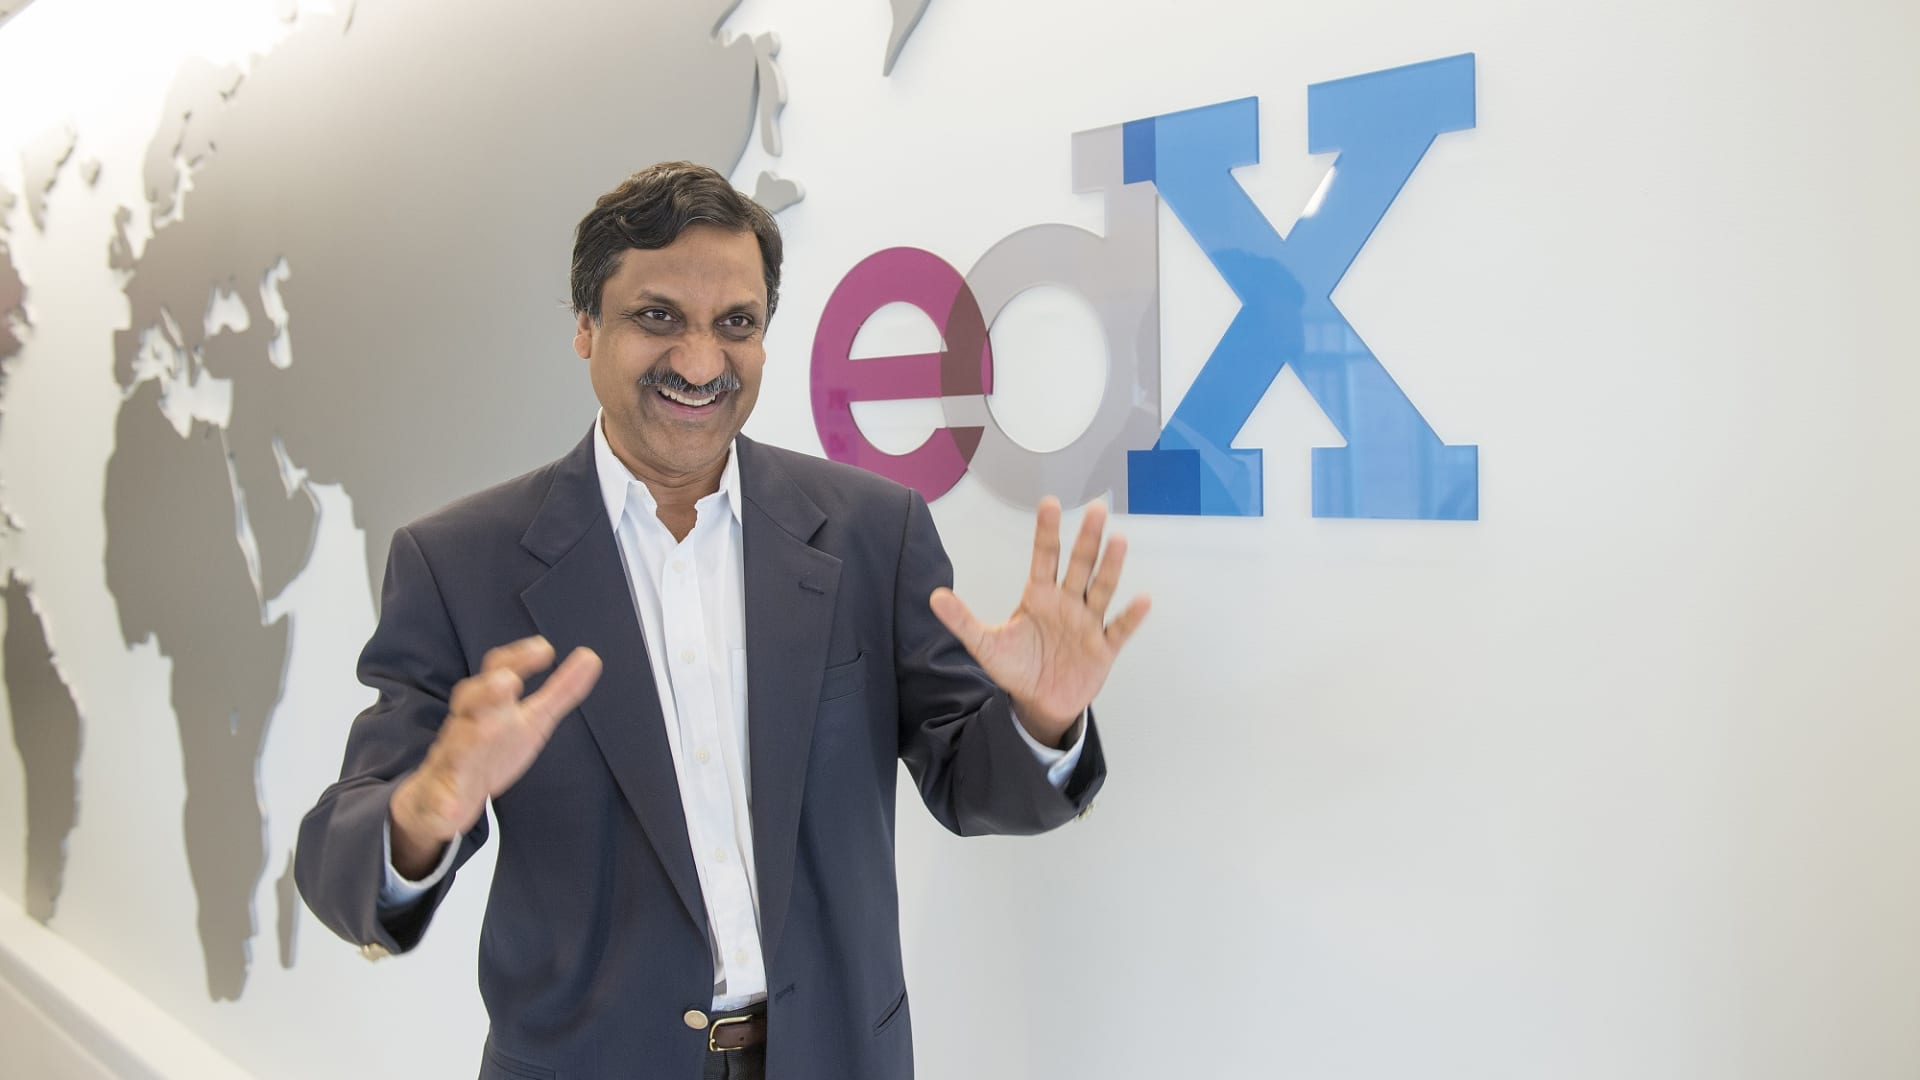 Anant Agarwal, CEO of EdX, and Professor of Electrical Engineering and Computer Science at MIT